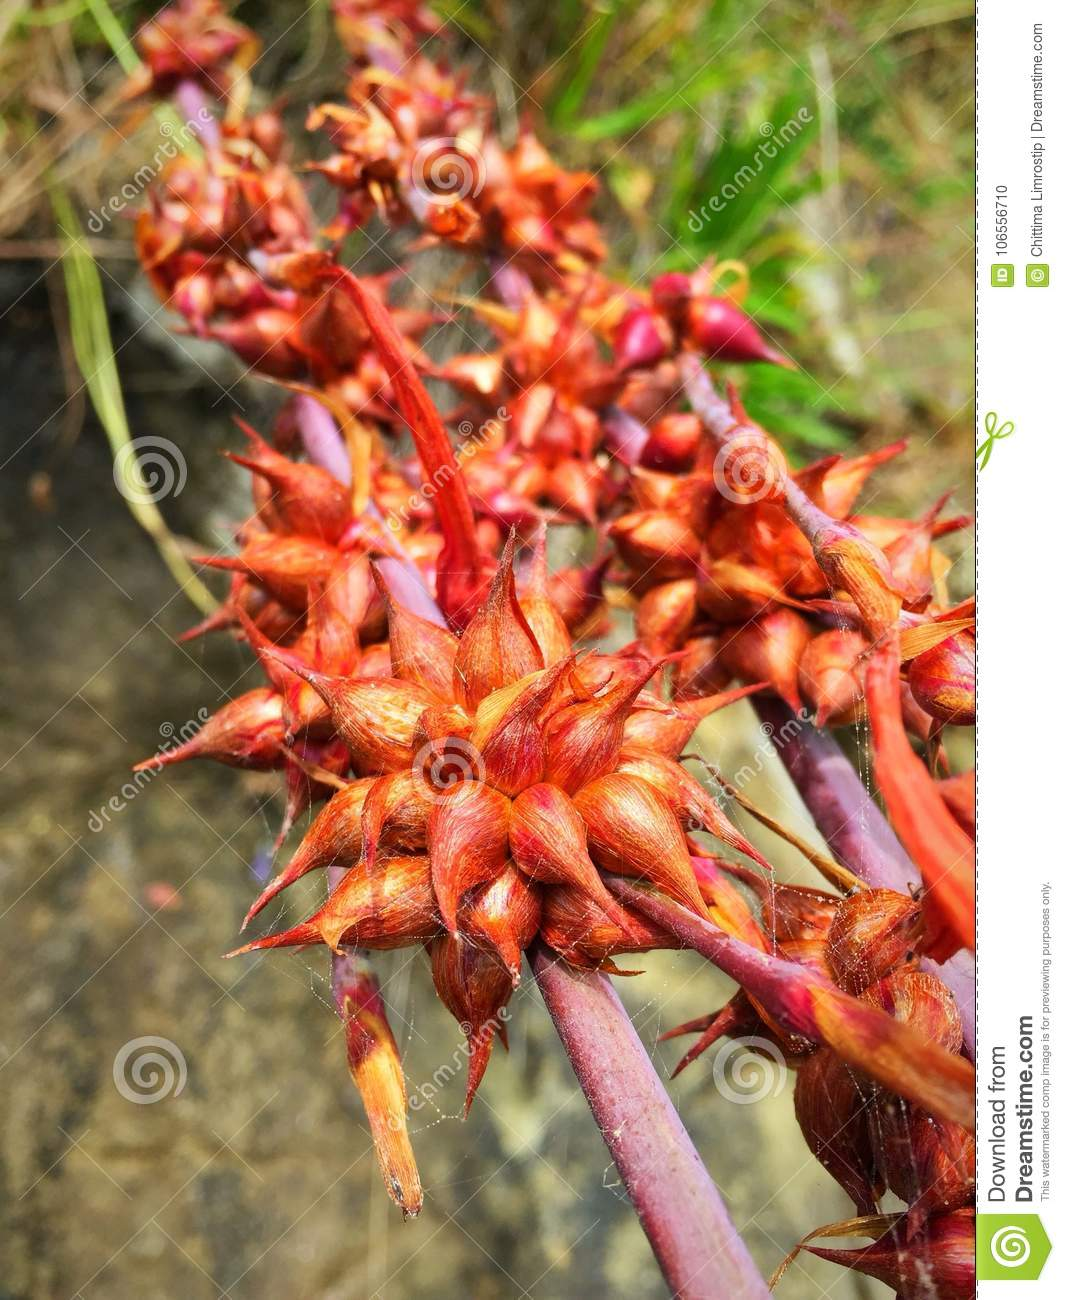 Australian Native Plants And Flowers Stock Photo Image Of